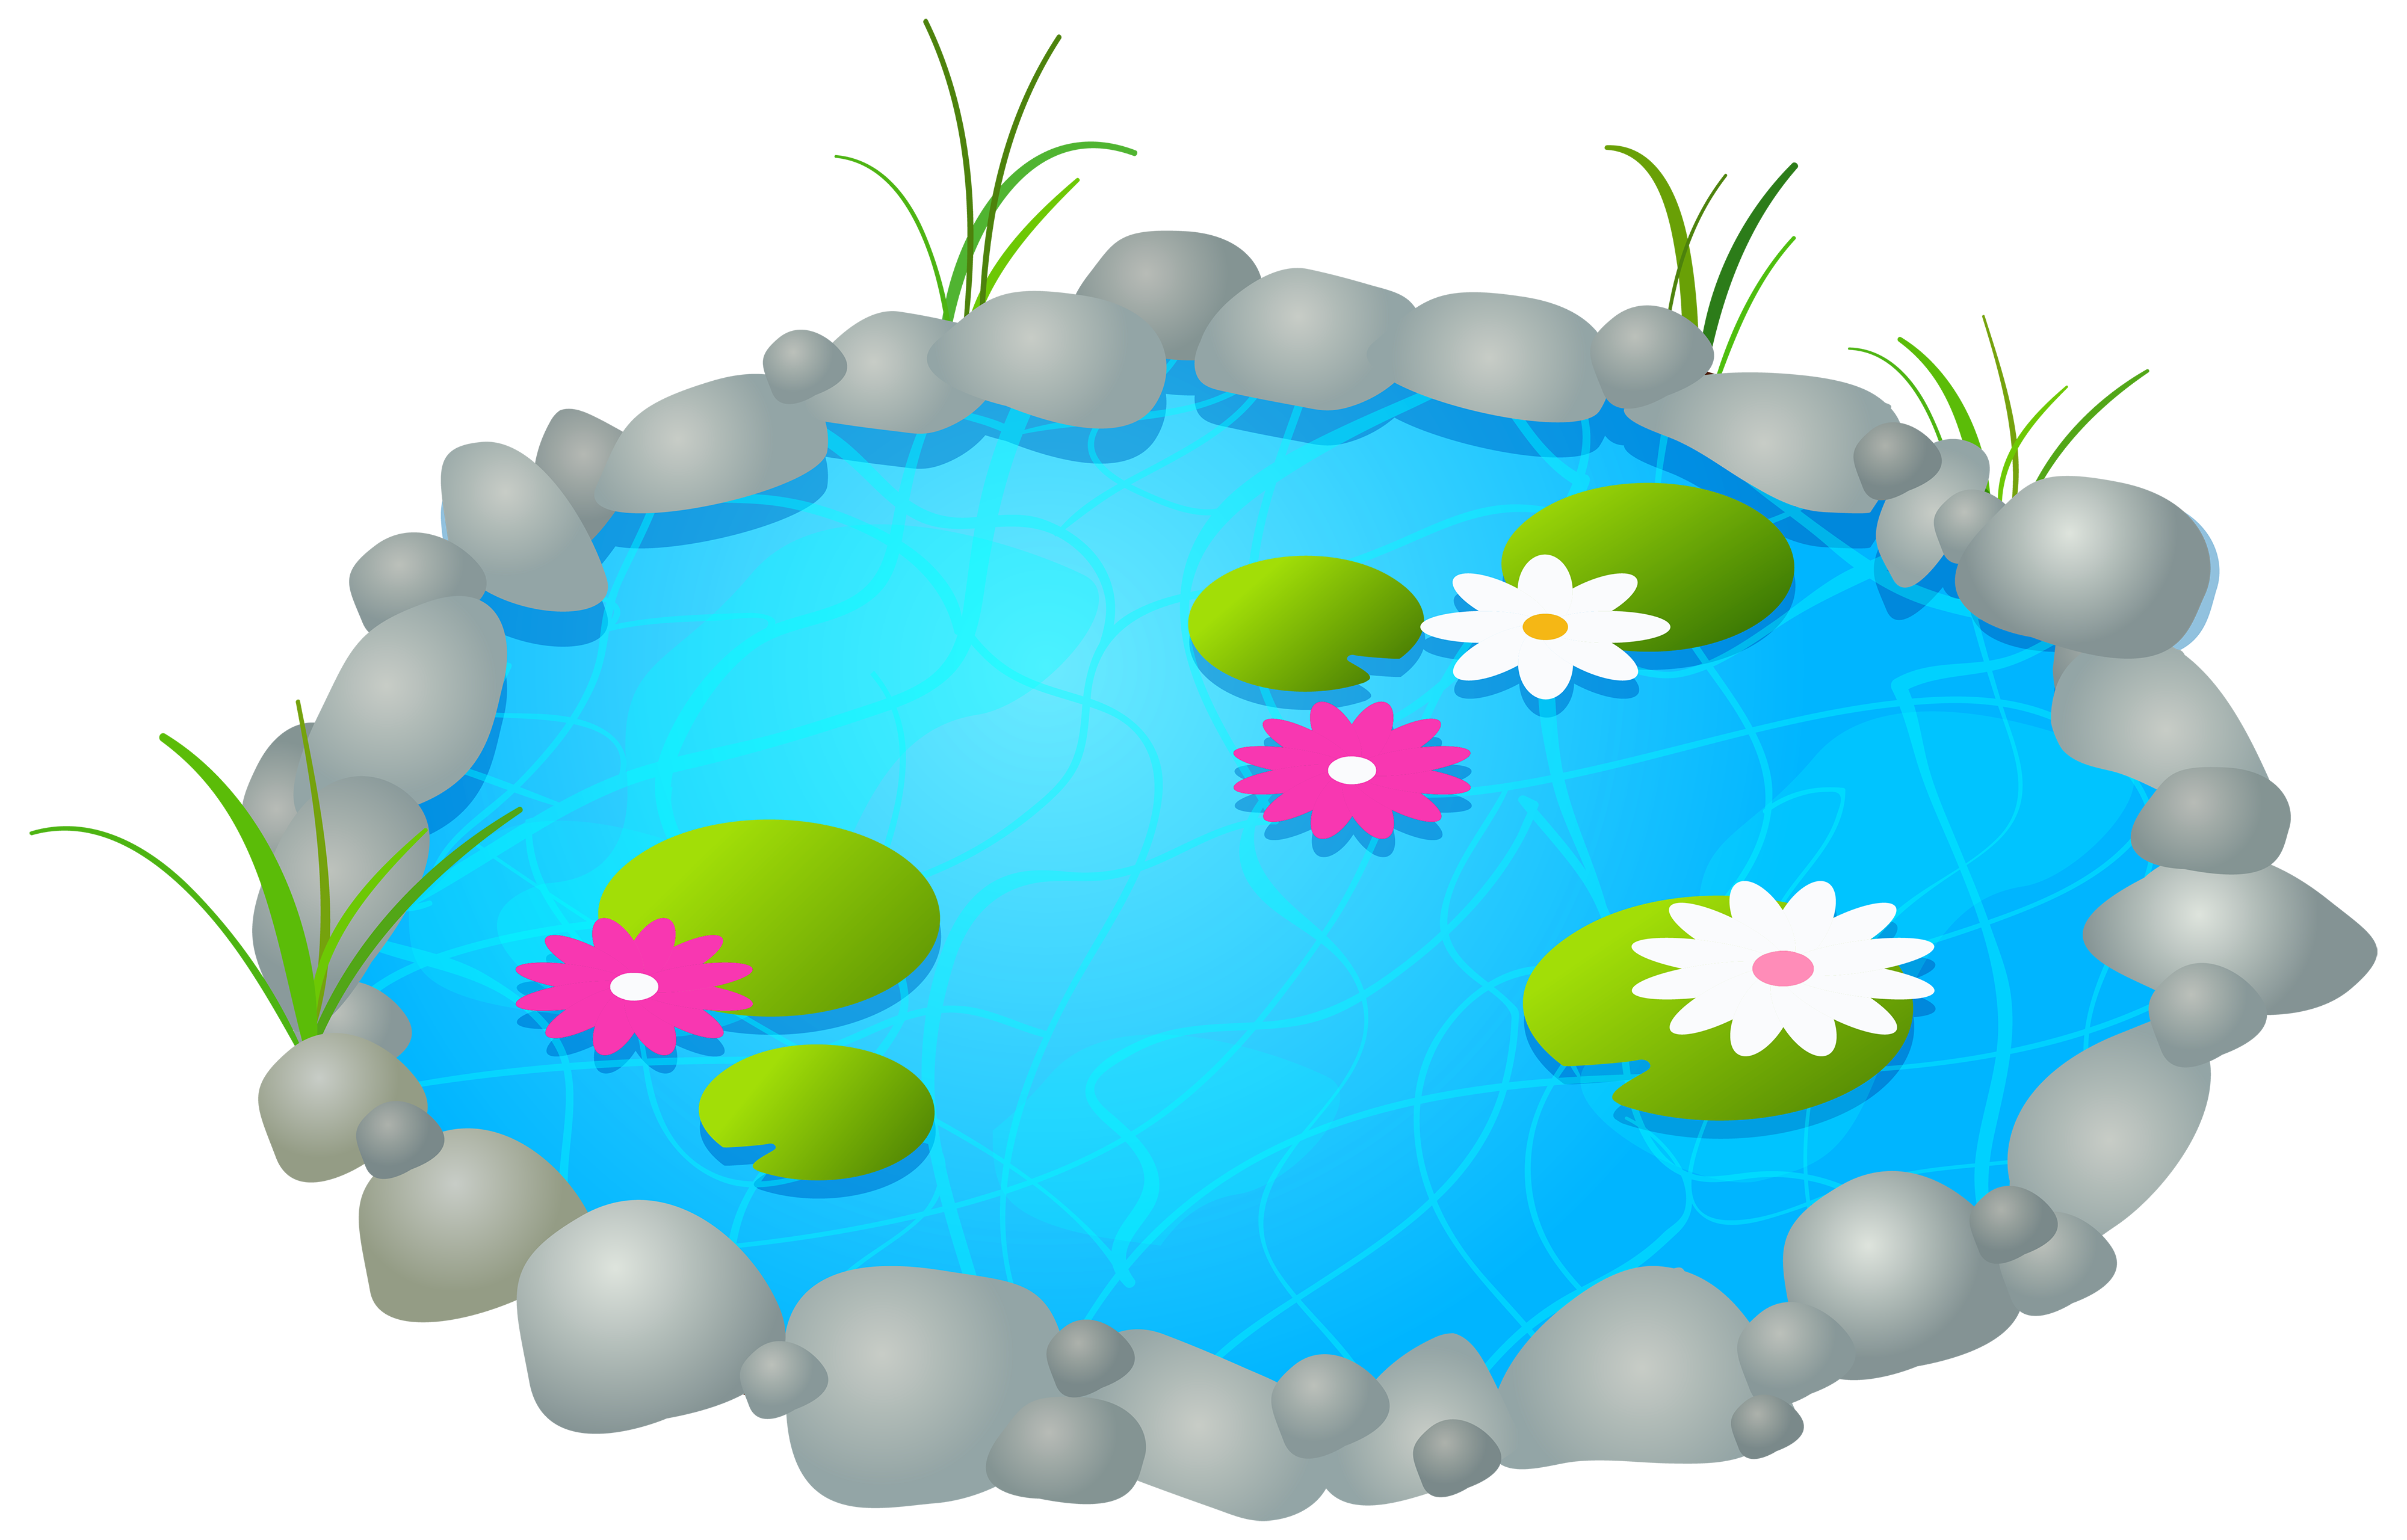 Fish pond game clipart svg black and white Garden Pond PNG Clipart | Clipart | Pinterest | Garden ponds and ... svg black and white